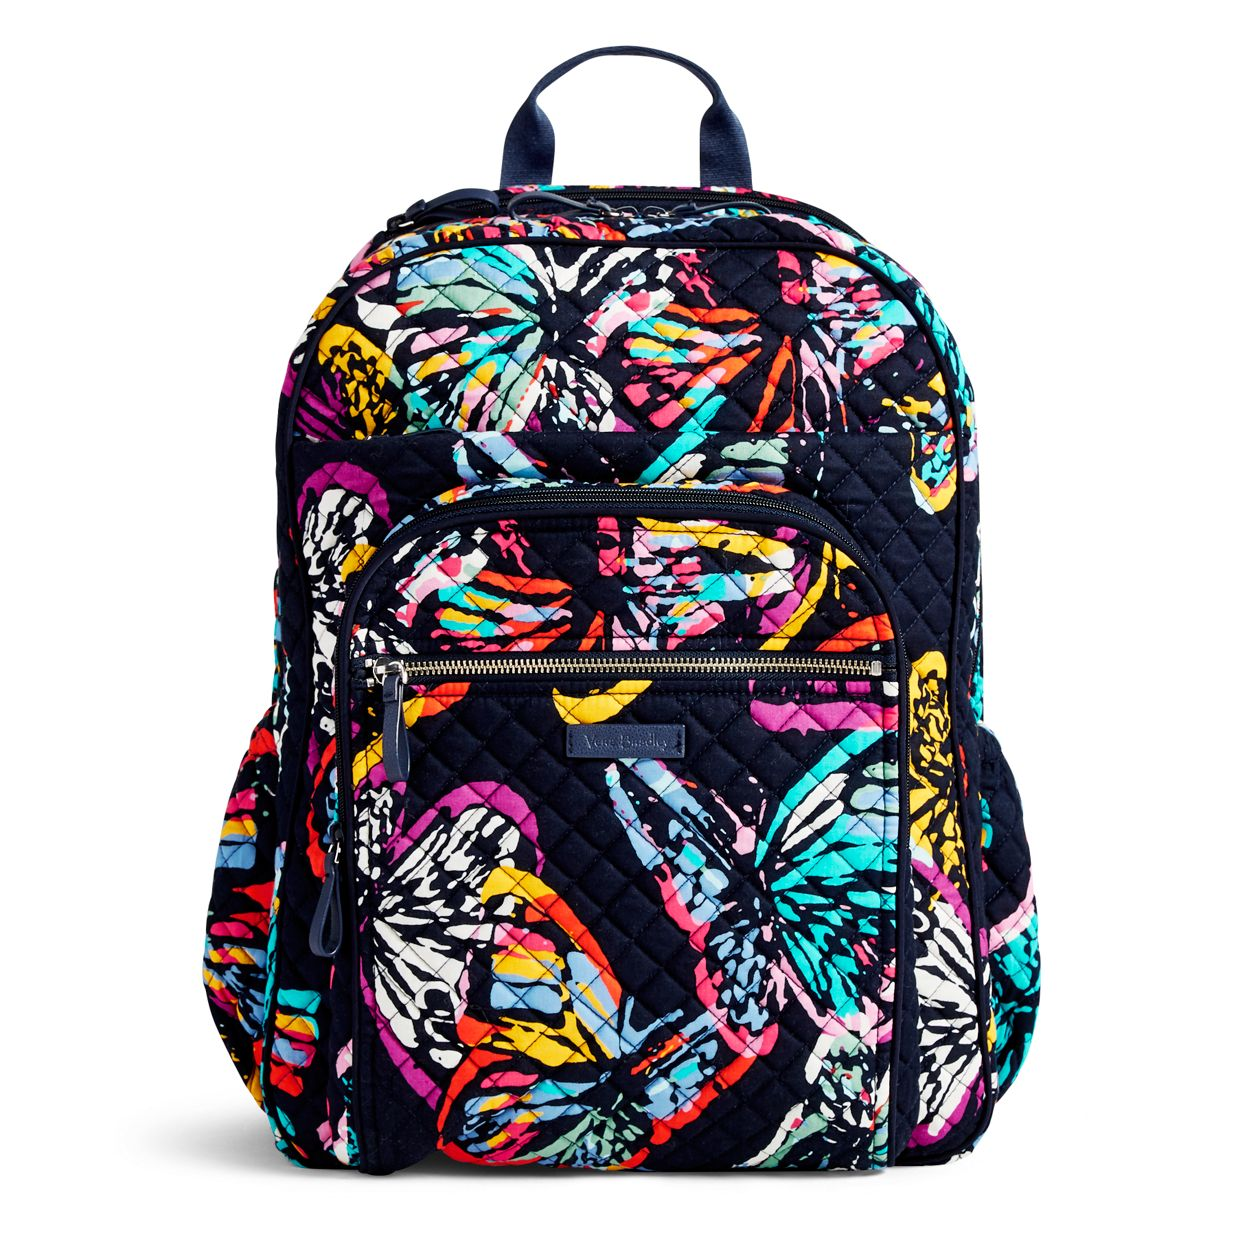 d84c4ed1179 Image of Iconic XL Campus Backpack in Butterfly Flutter ...